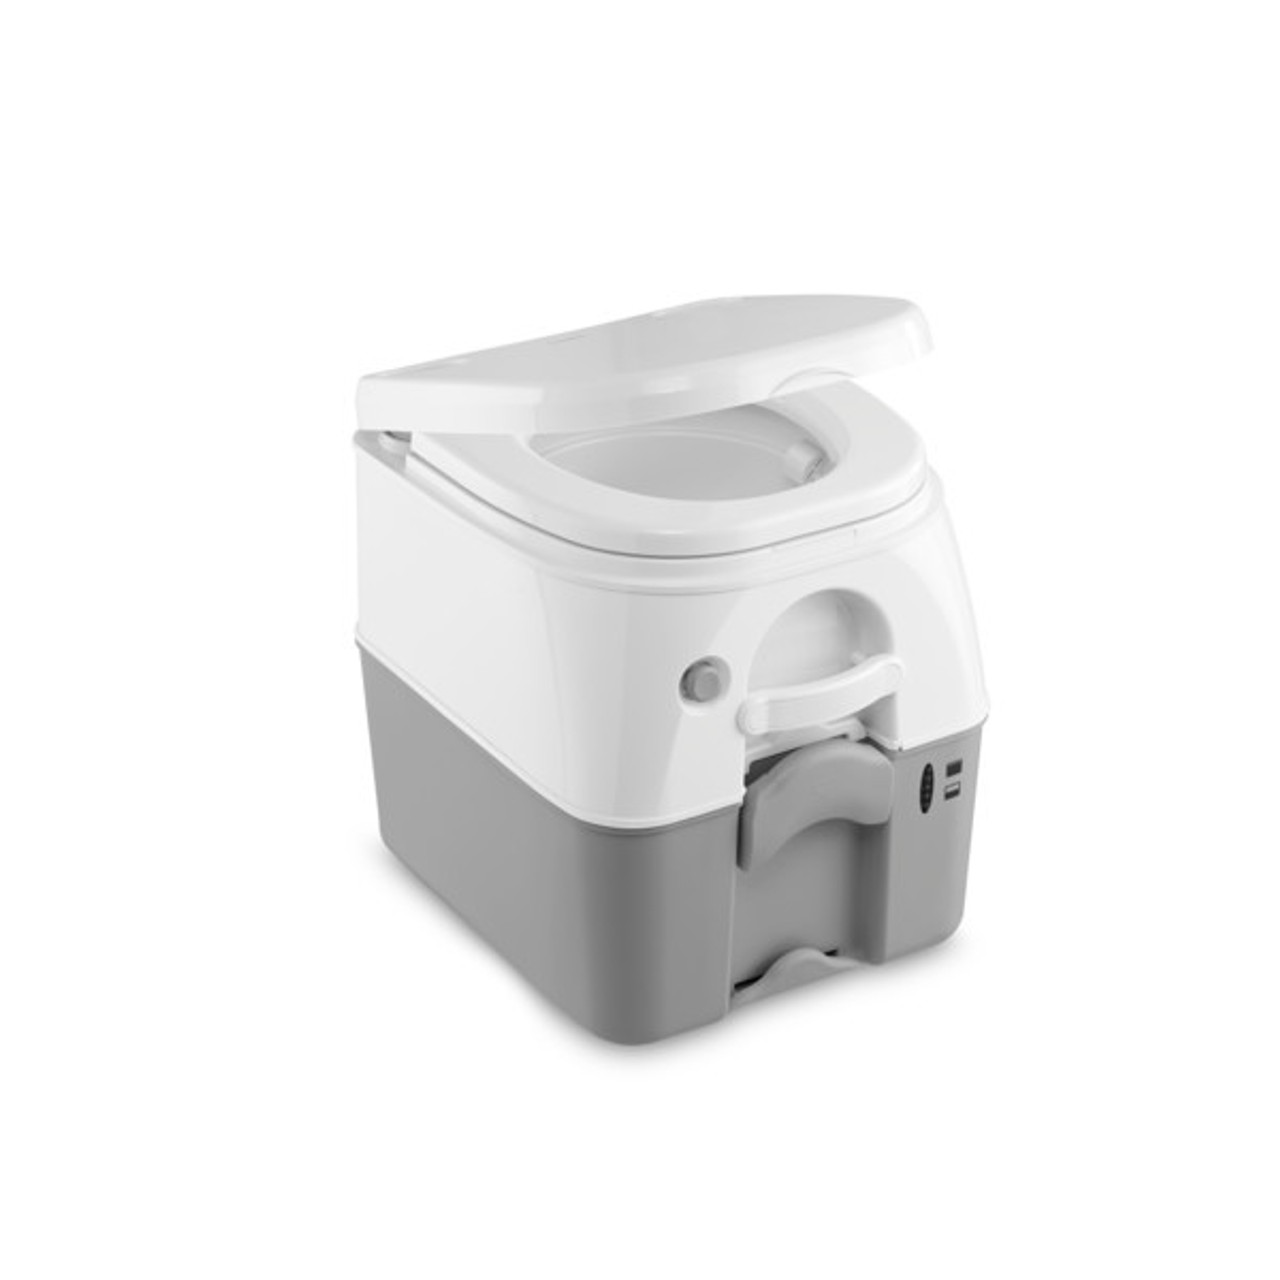 TOILET, PORTABLE 975 GREY 097506